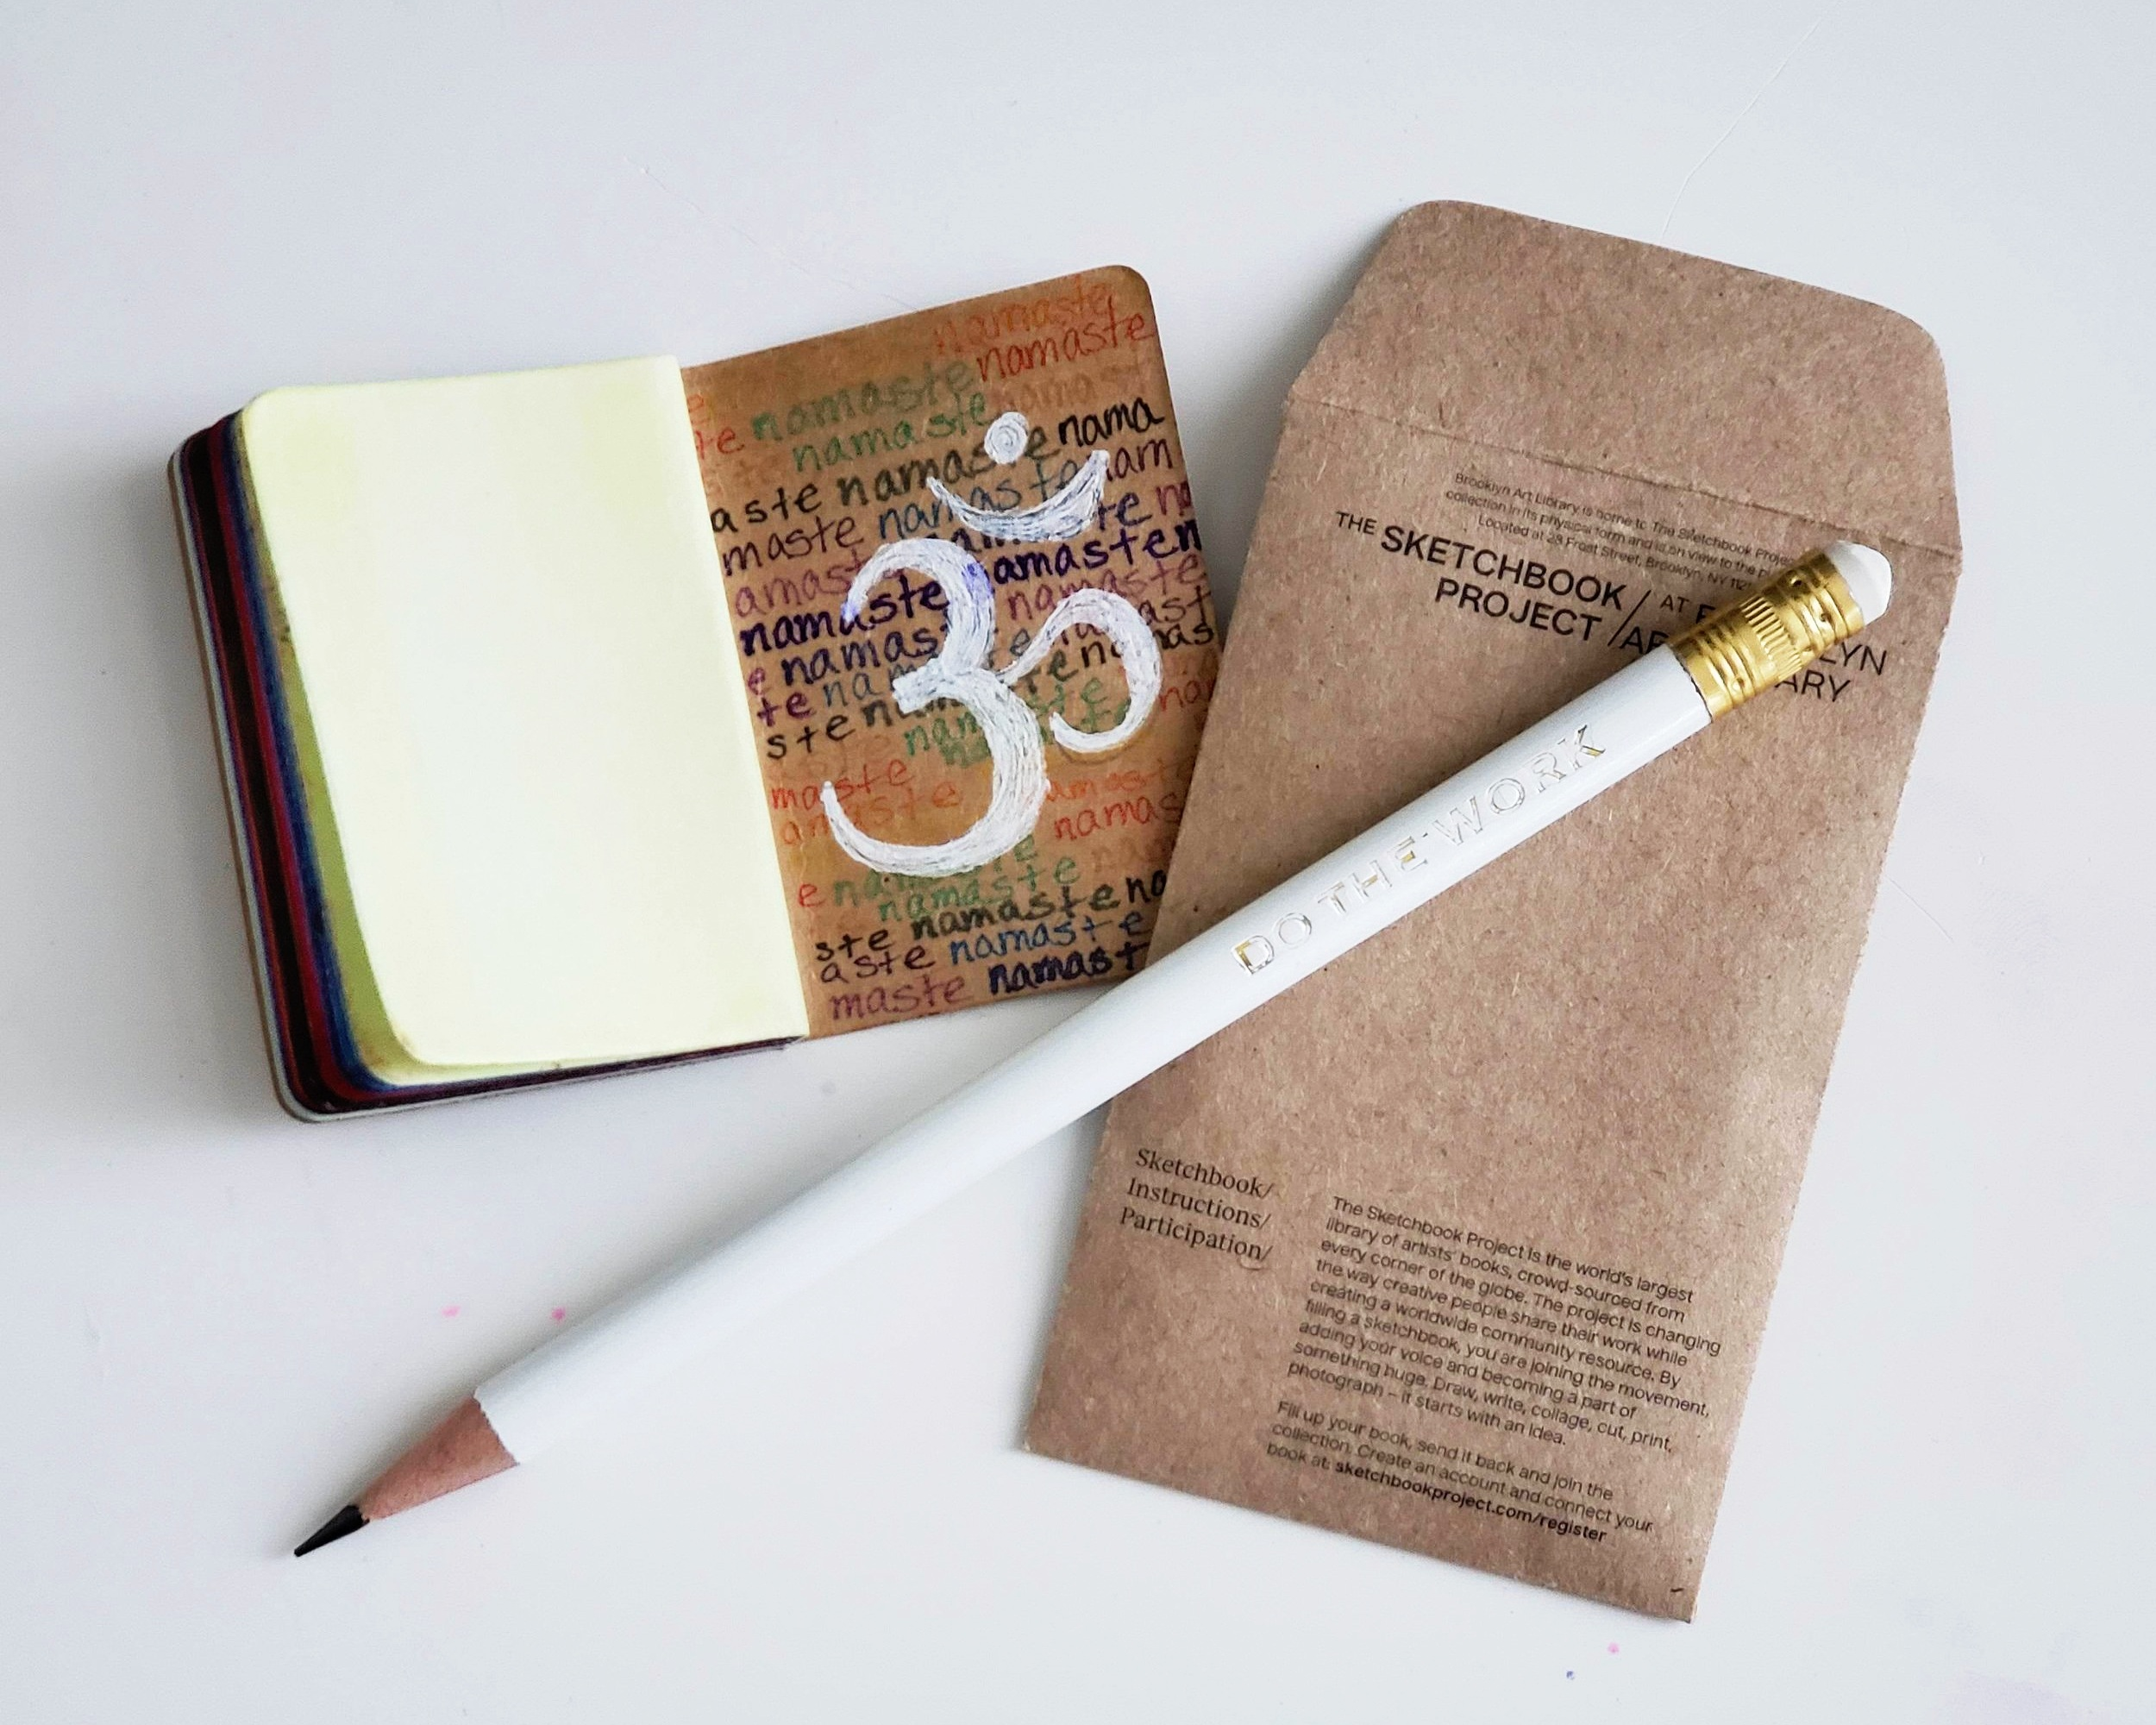 A finished Tiny Sketchbook next to it's mailer and a Do the Work motto pencil from Thrive Art Studios.